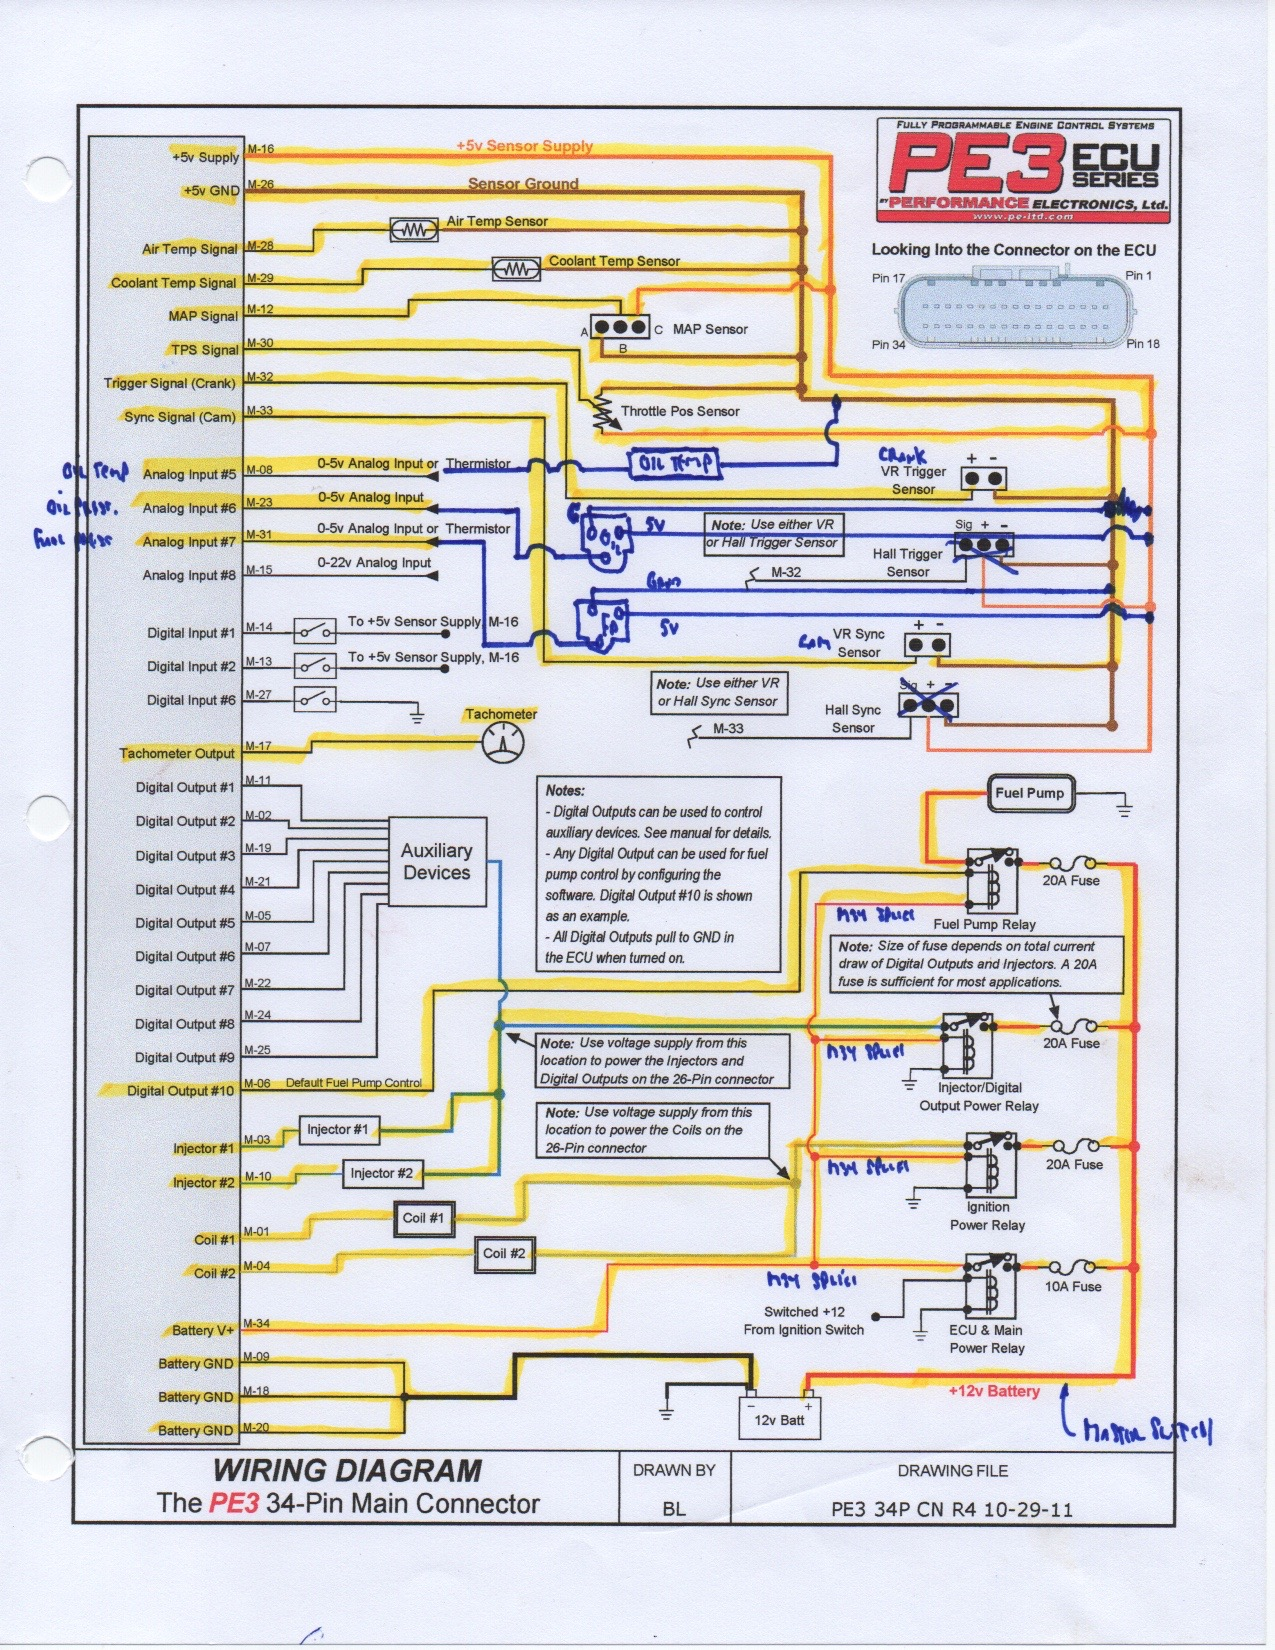 performance electronics factory wiring diagrams junk yard zetec wiring diagram symbols chart one of the reasons this project was so daunting was the complexity of the wiring diagrams the cars i'd worked on in the 80's only had about 11 or 12 wires